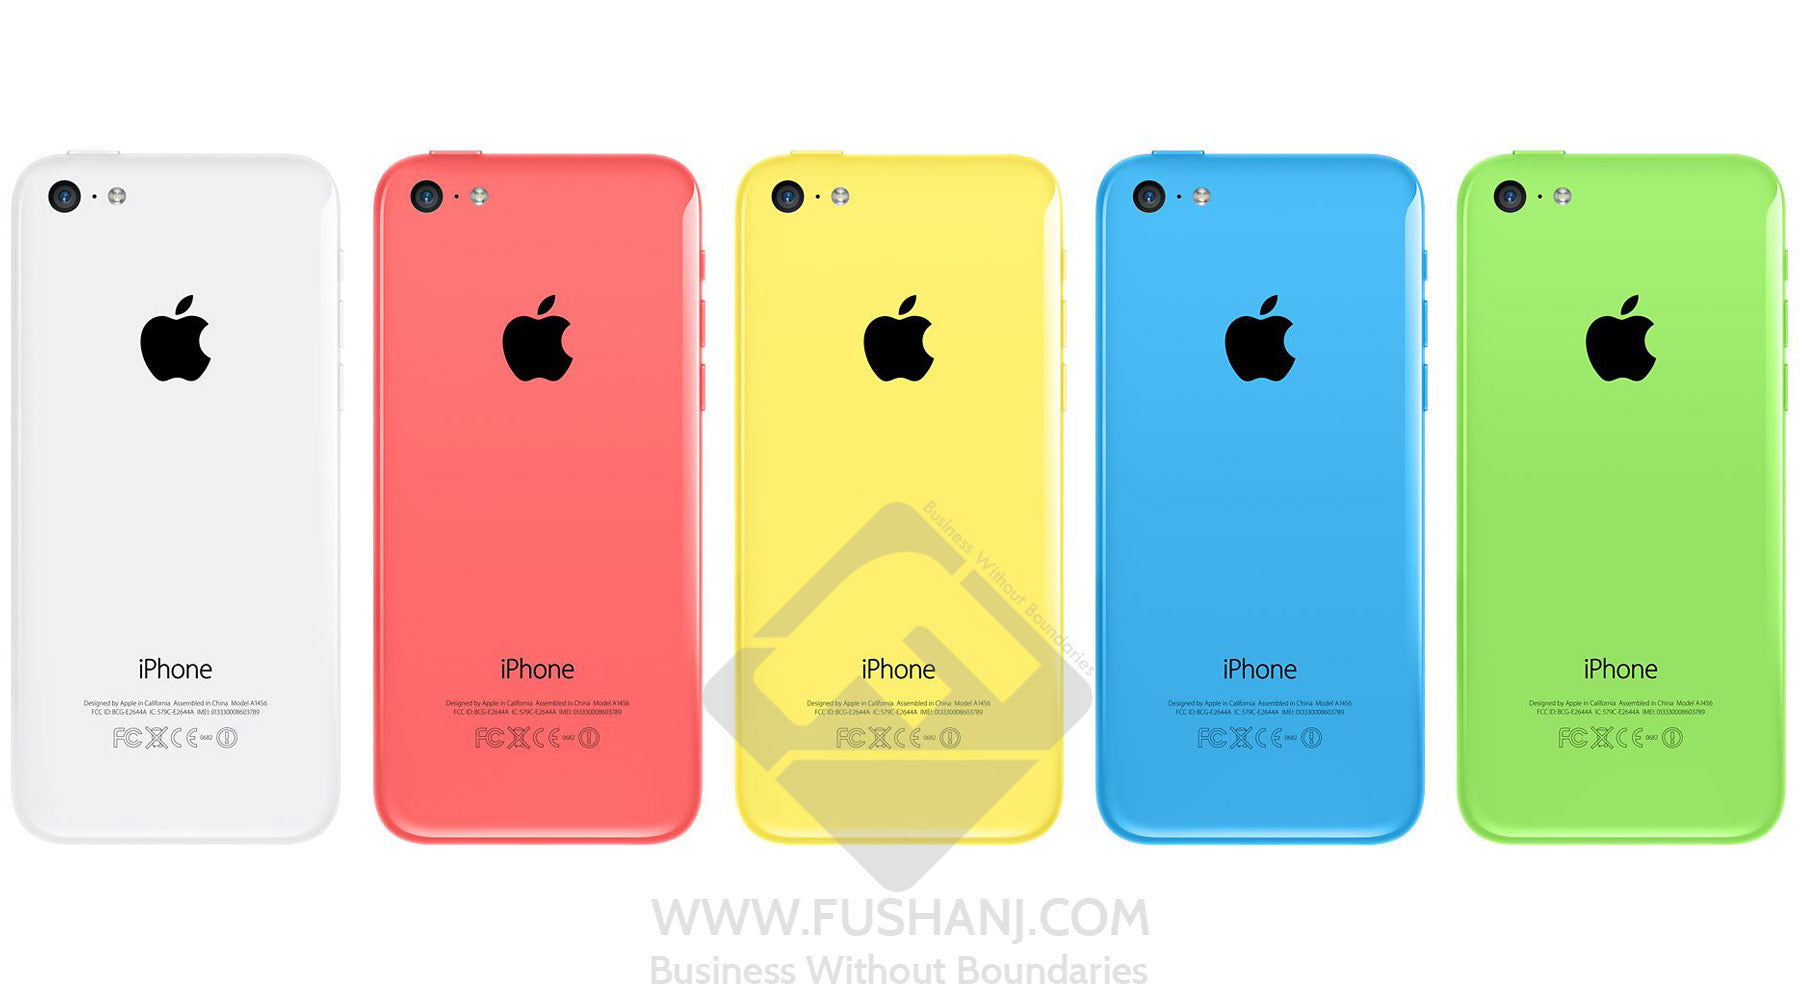 buy iPhone 5c at best price online cash on delivery dubai uae